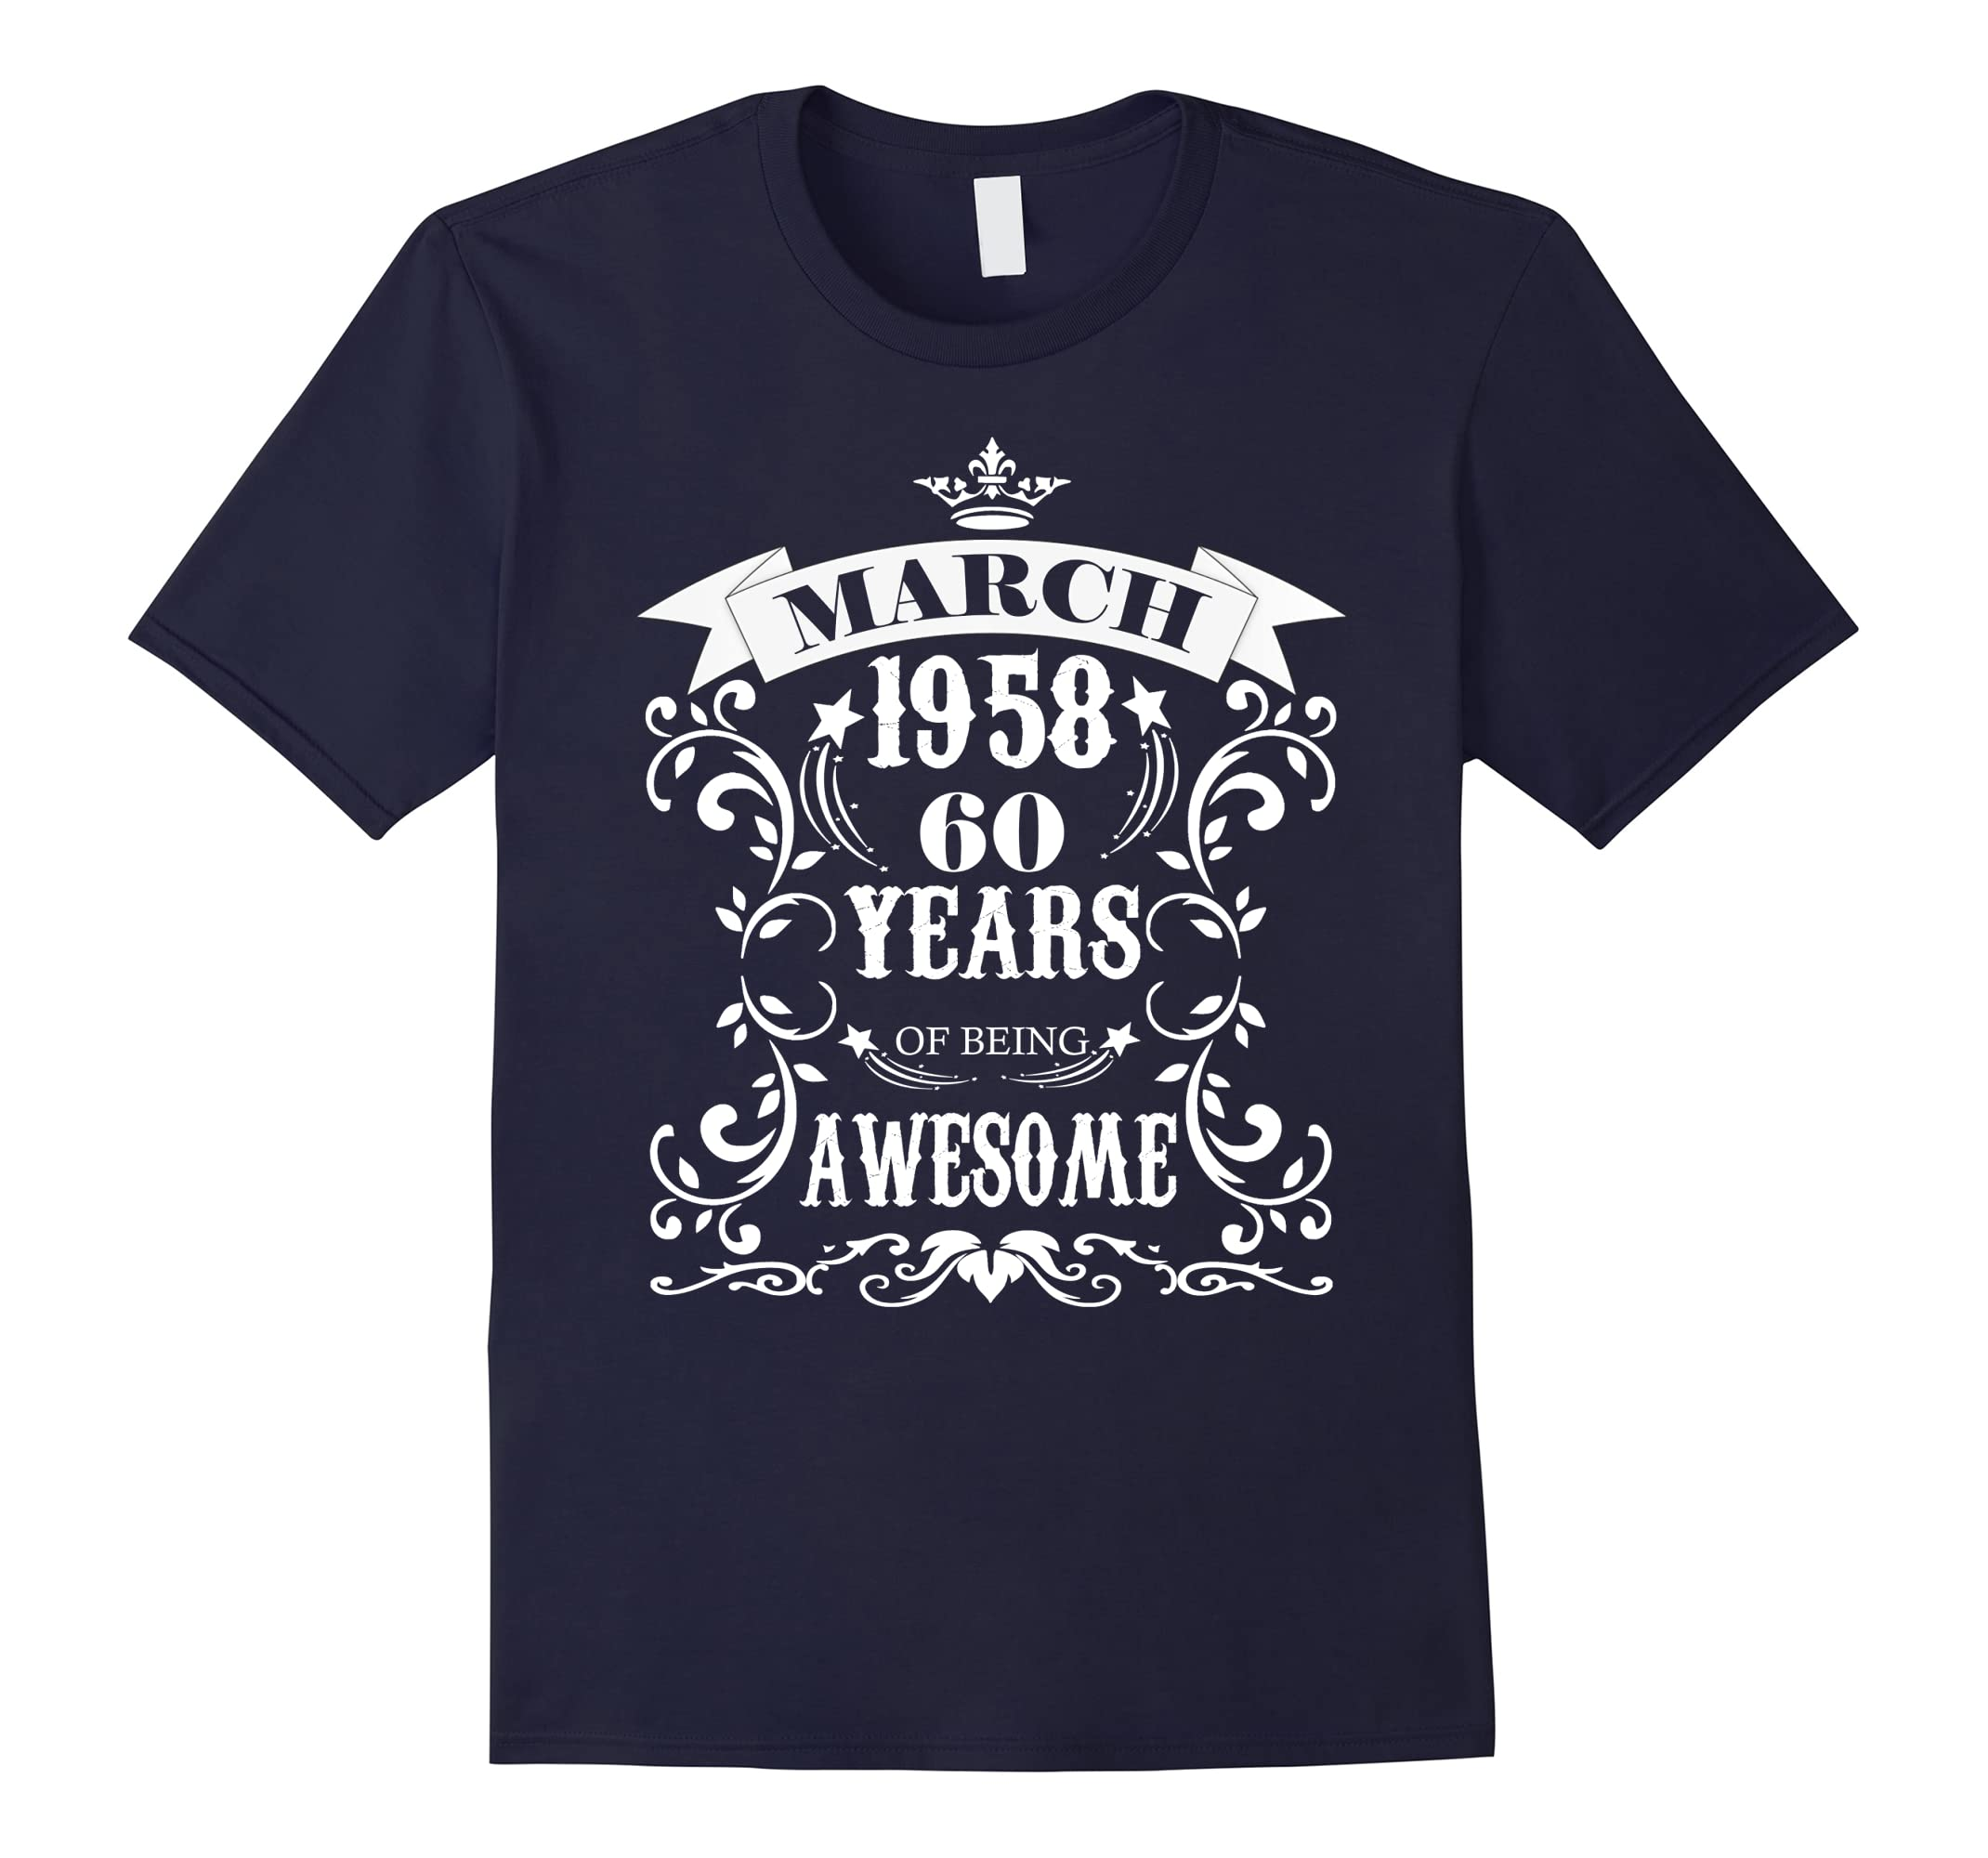 60th Birthday Gift - Awesome Born in March 1958 T-Shirt-ah my shirt one gift